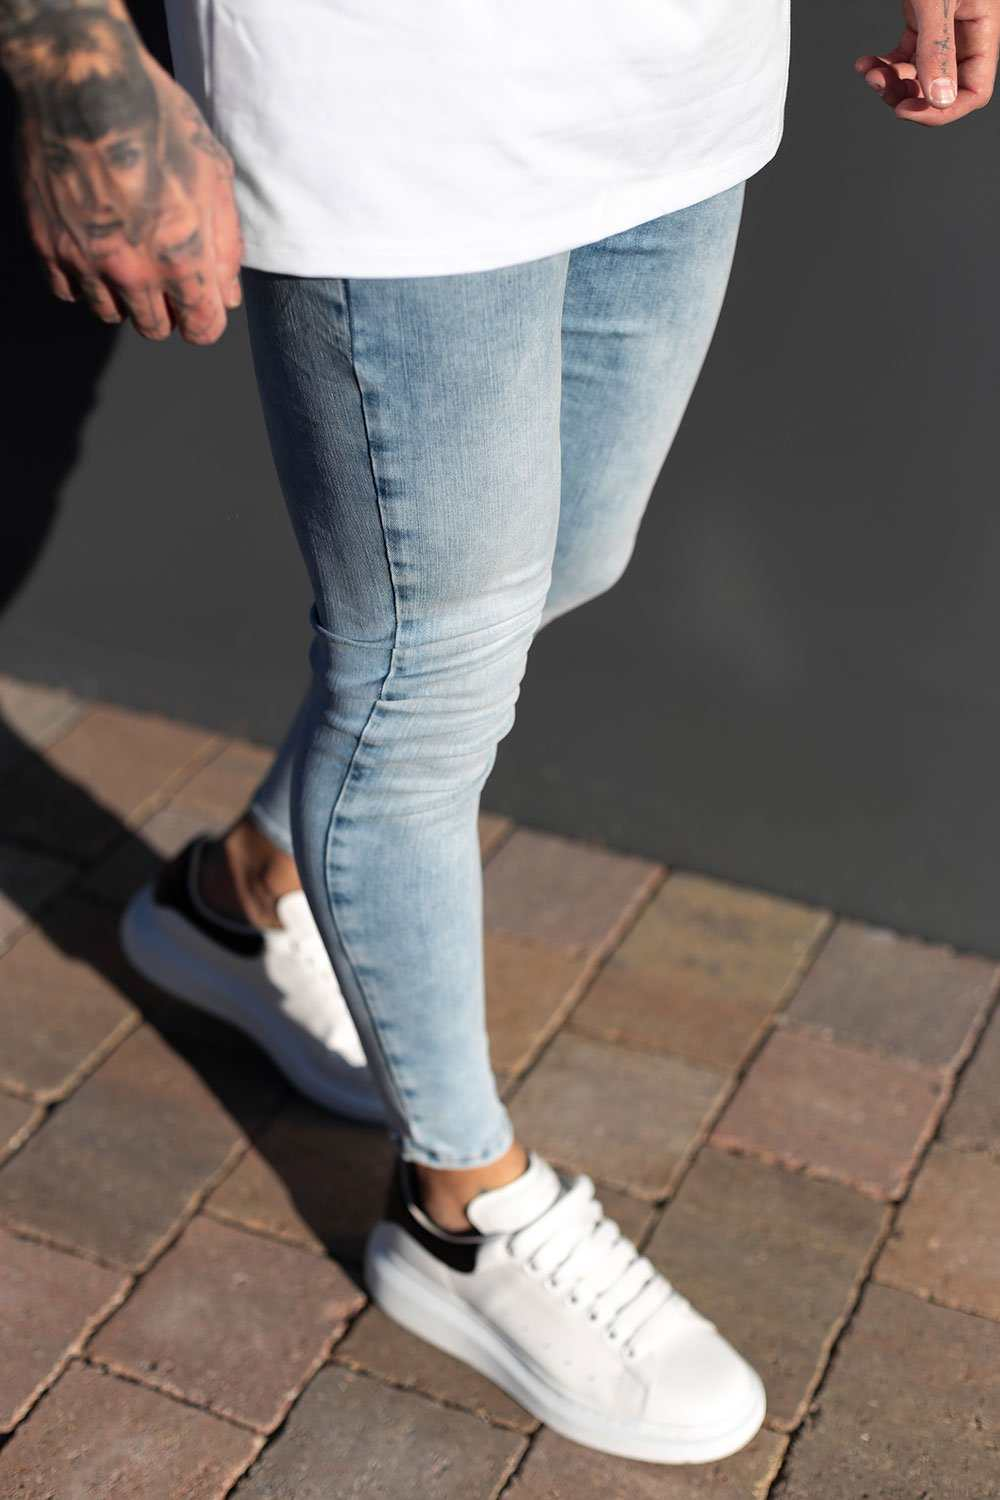 Sinners Attire Super Spray On Jeans - Light Blue - 4